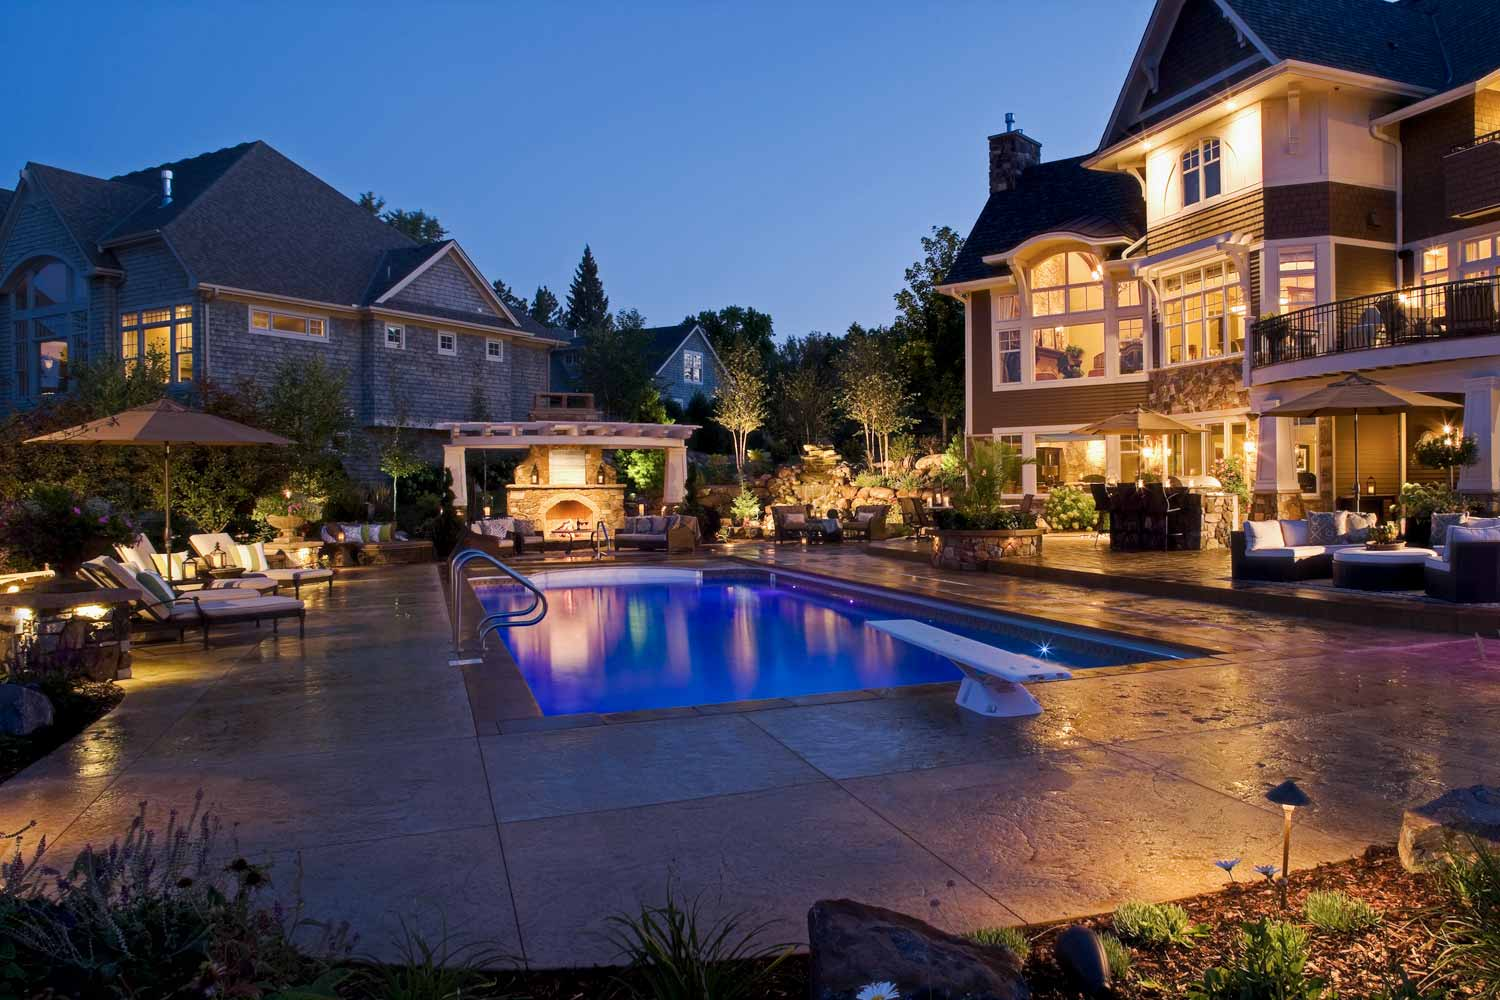 Backyard landscape design at night in Minnetrista, MN